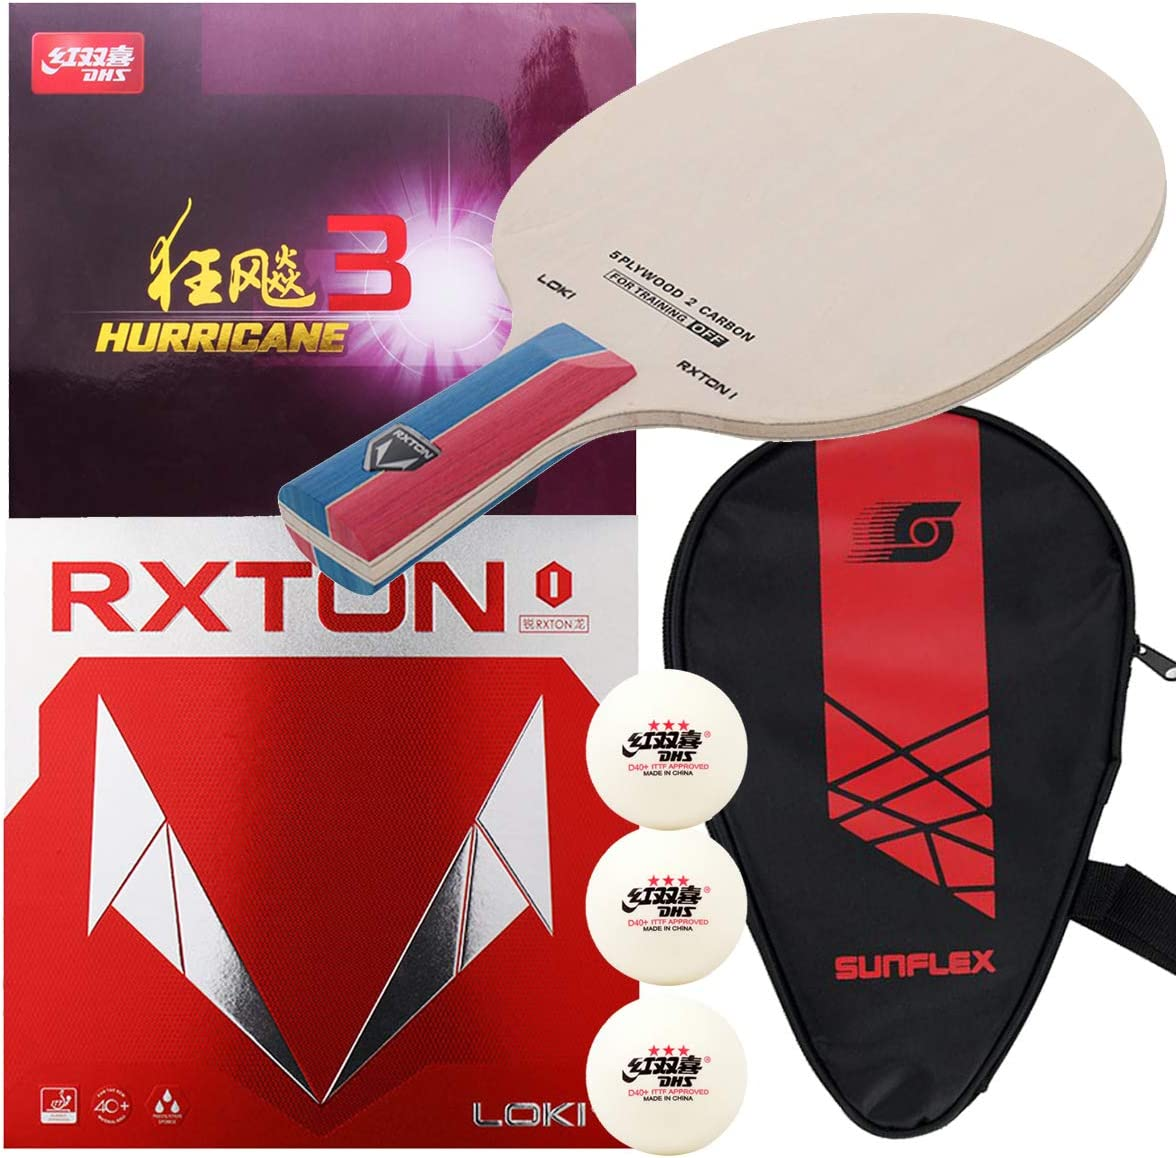 Loki RXTON 1 Carbon Blade with RXTON 1 and DHS Hurricane 3 Table Tennis Rubber, TTSports Assembled Training Series Ping Pong Racket